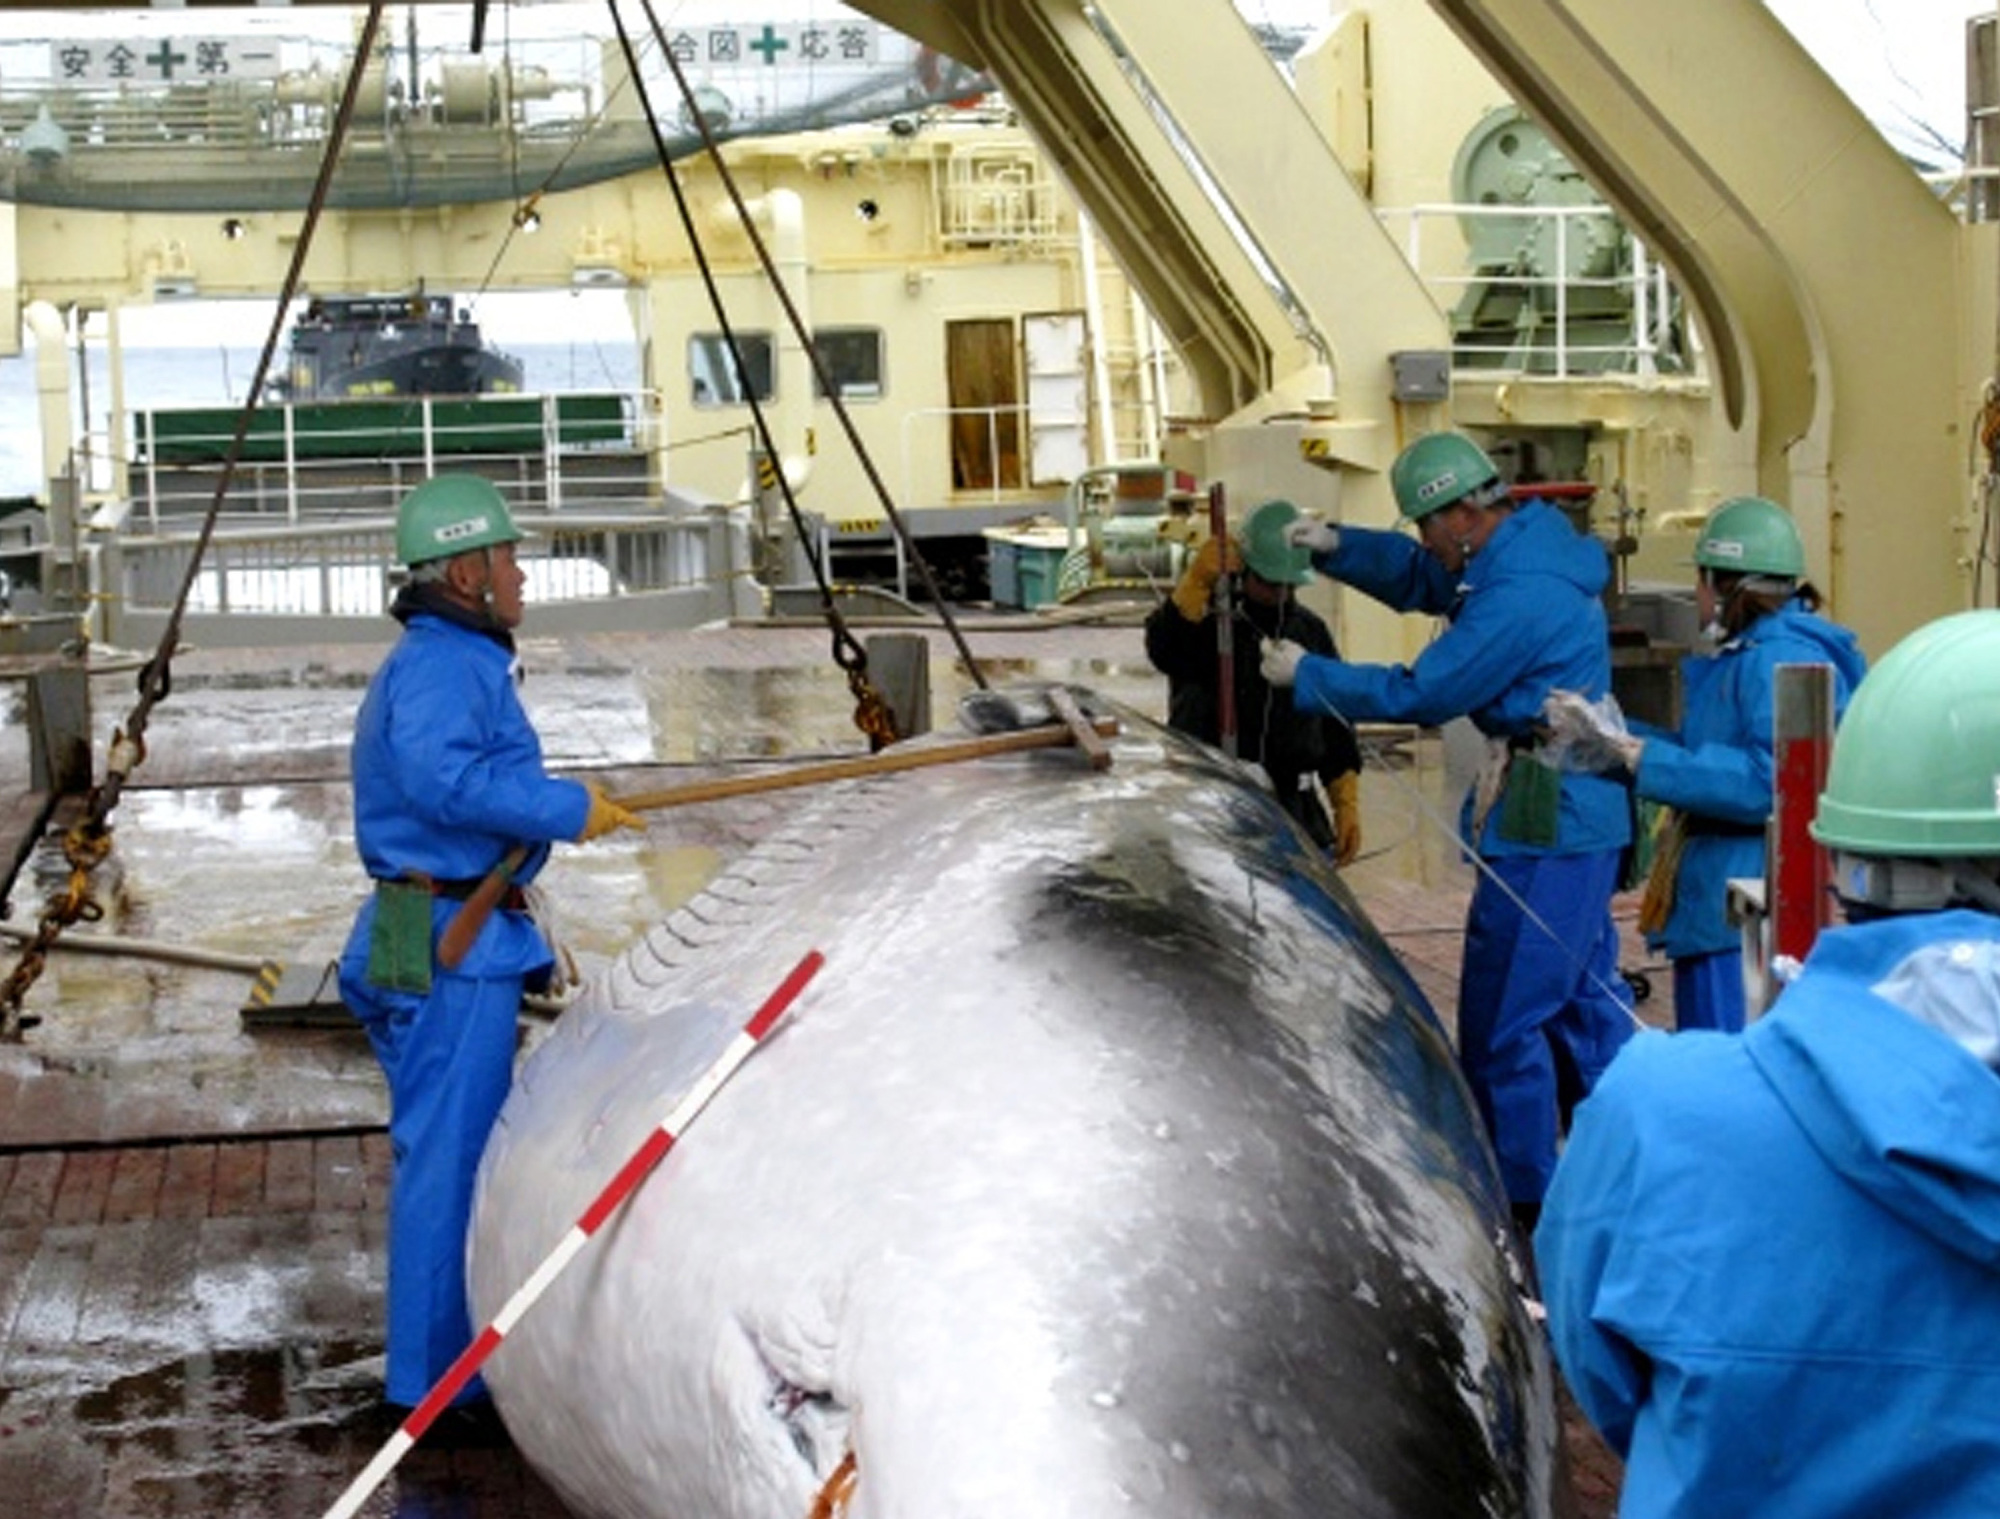 A captured minke whale is measured on the deck of the Japanese whaling ship the Nisshin Maru in Antarctica's Ross Sea in February 2009. | AP